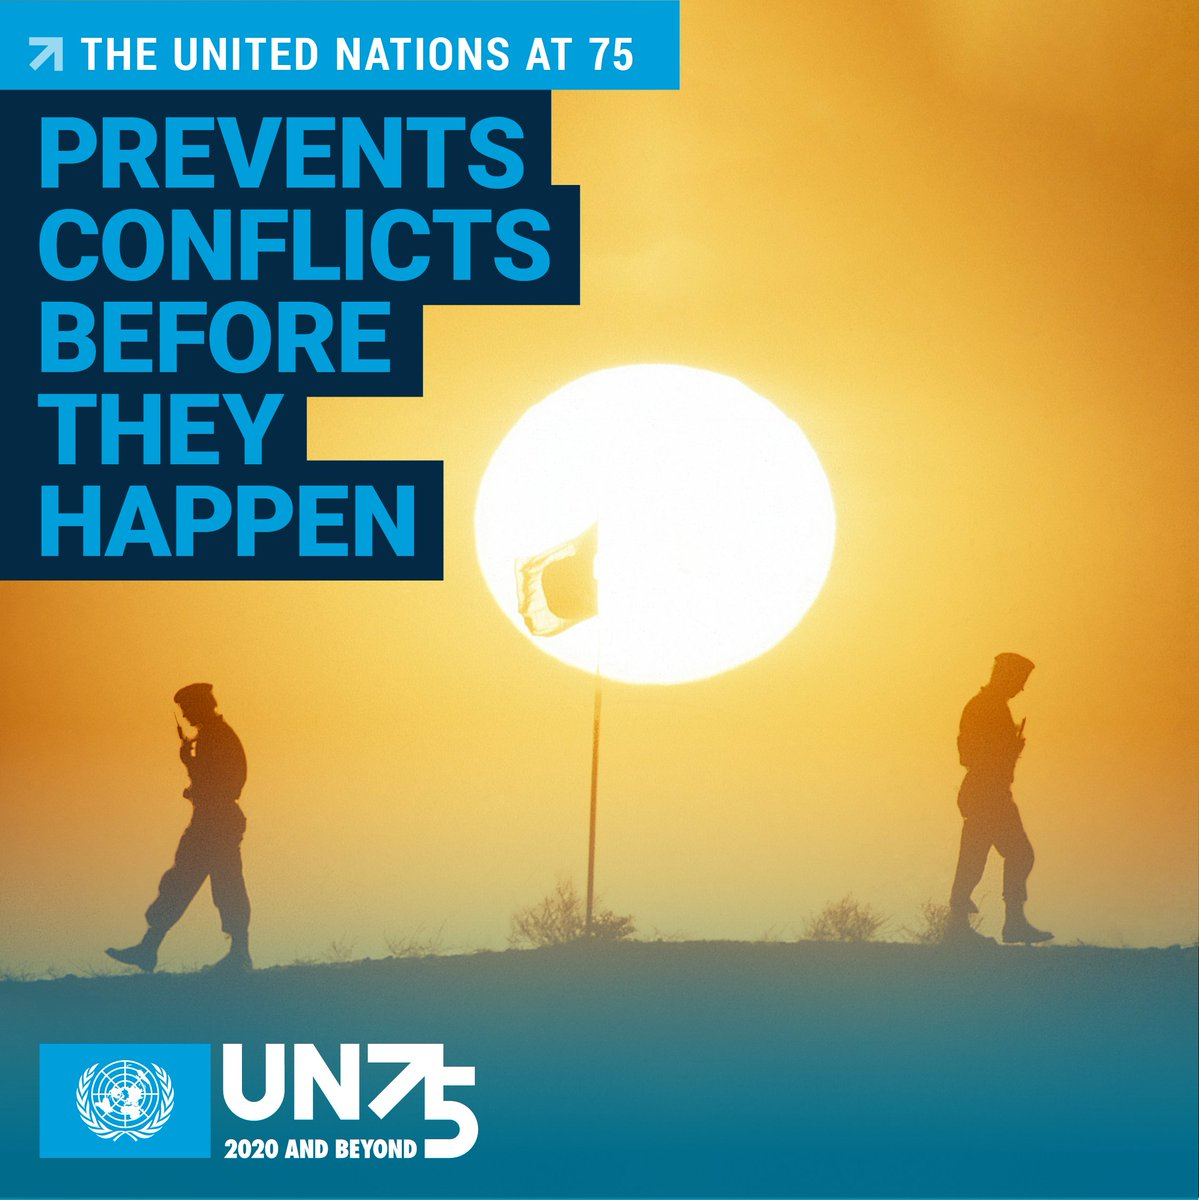 #YearInReview: On this year's #UNDay in October, we marked 75 years of making a difference in the lives of people everywhere.   It may not always make the headlines — but the UN works all over the world to prevent conflict and keep peace & stability. …